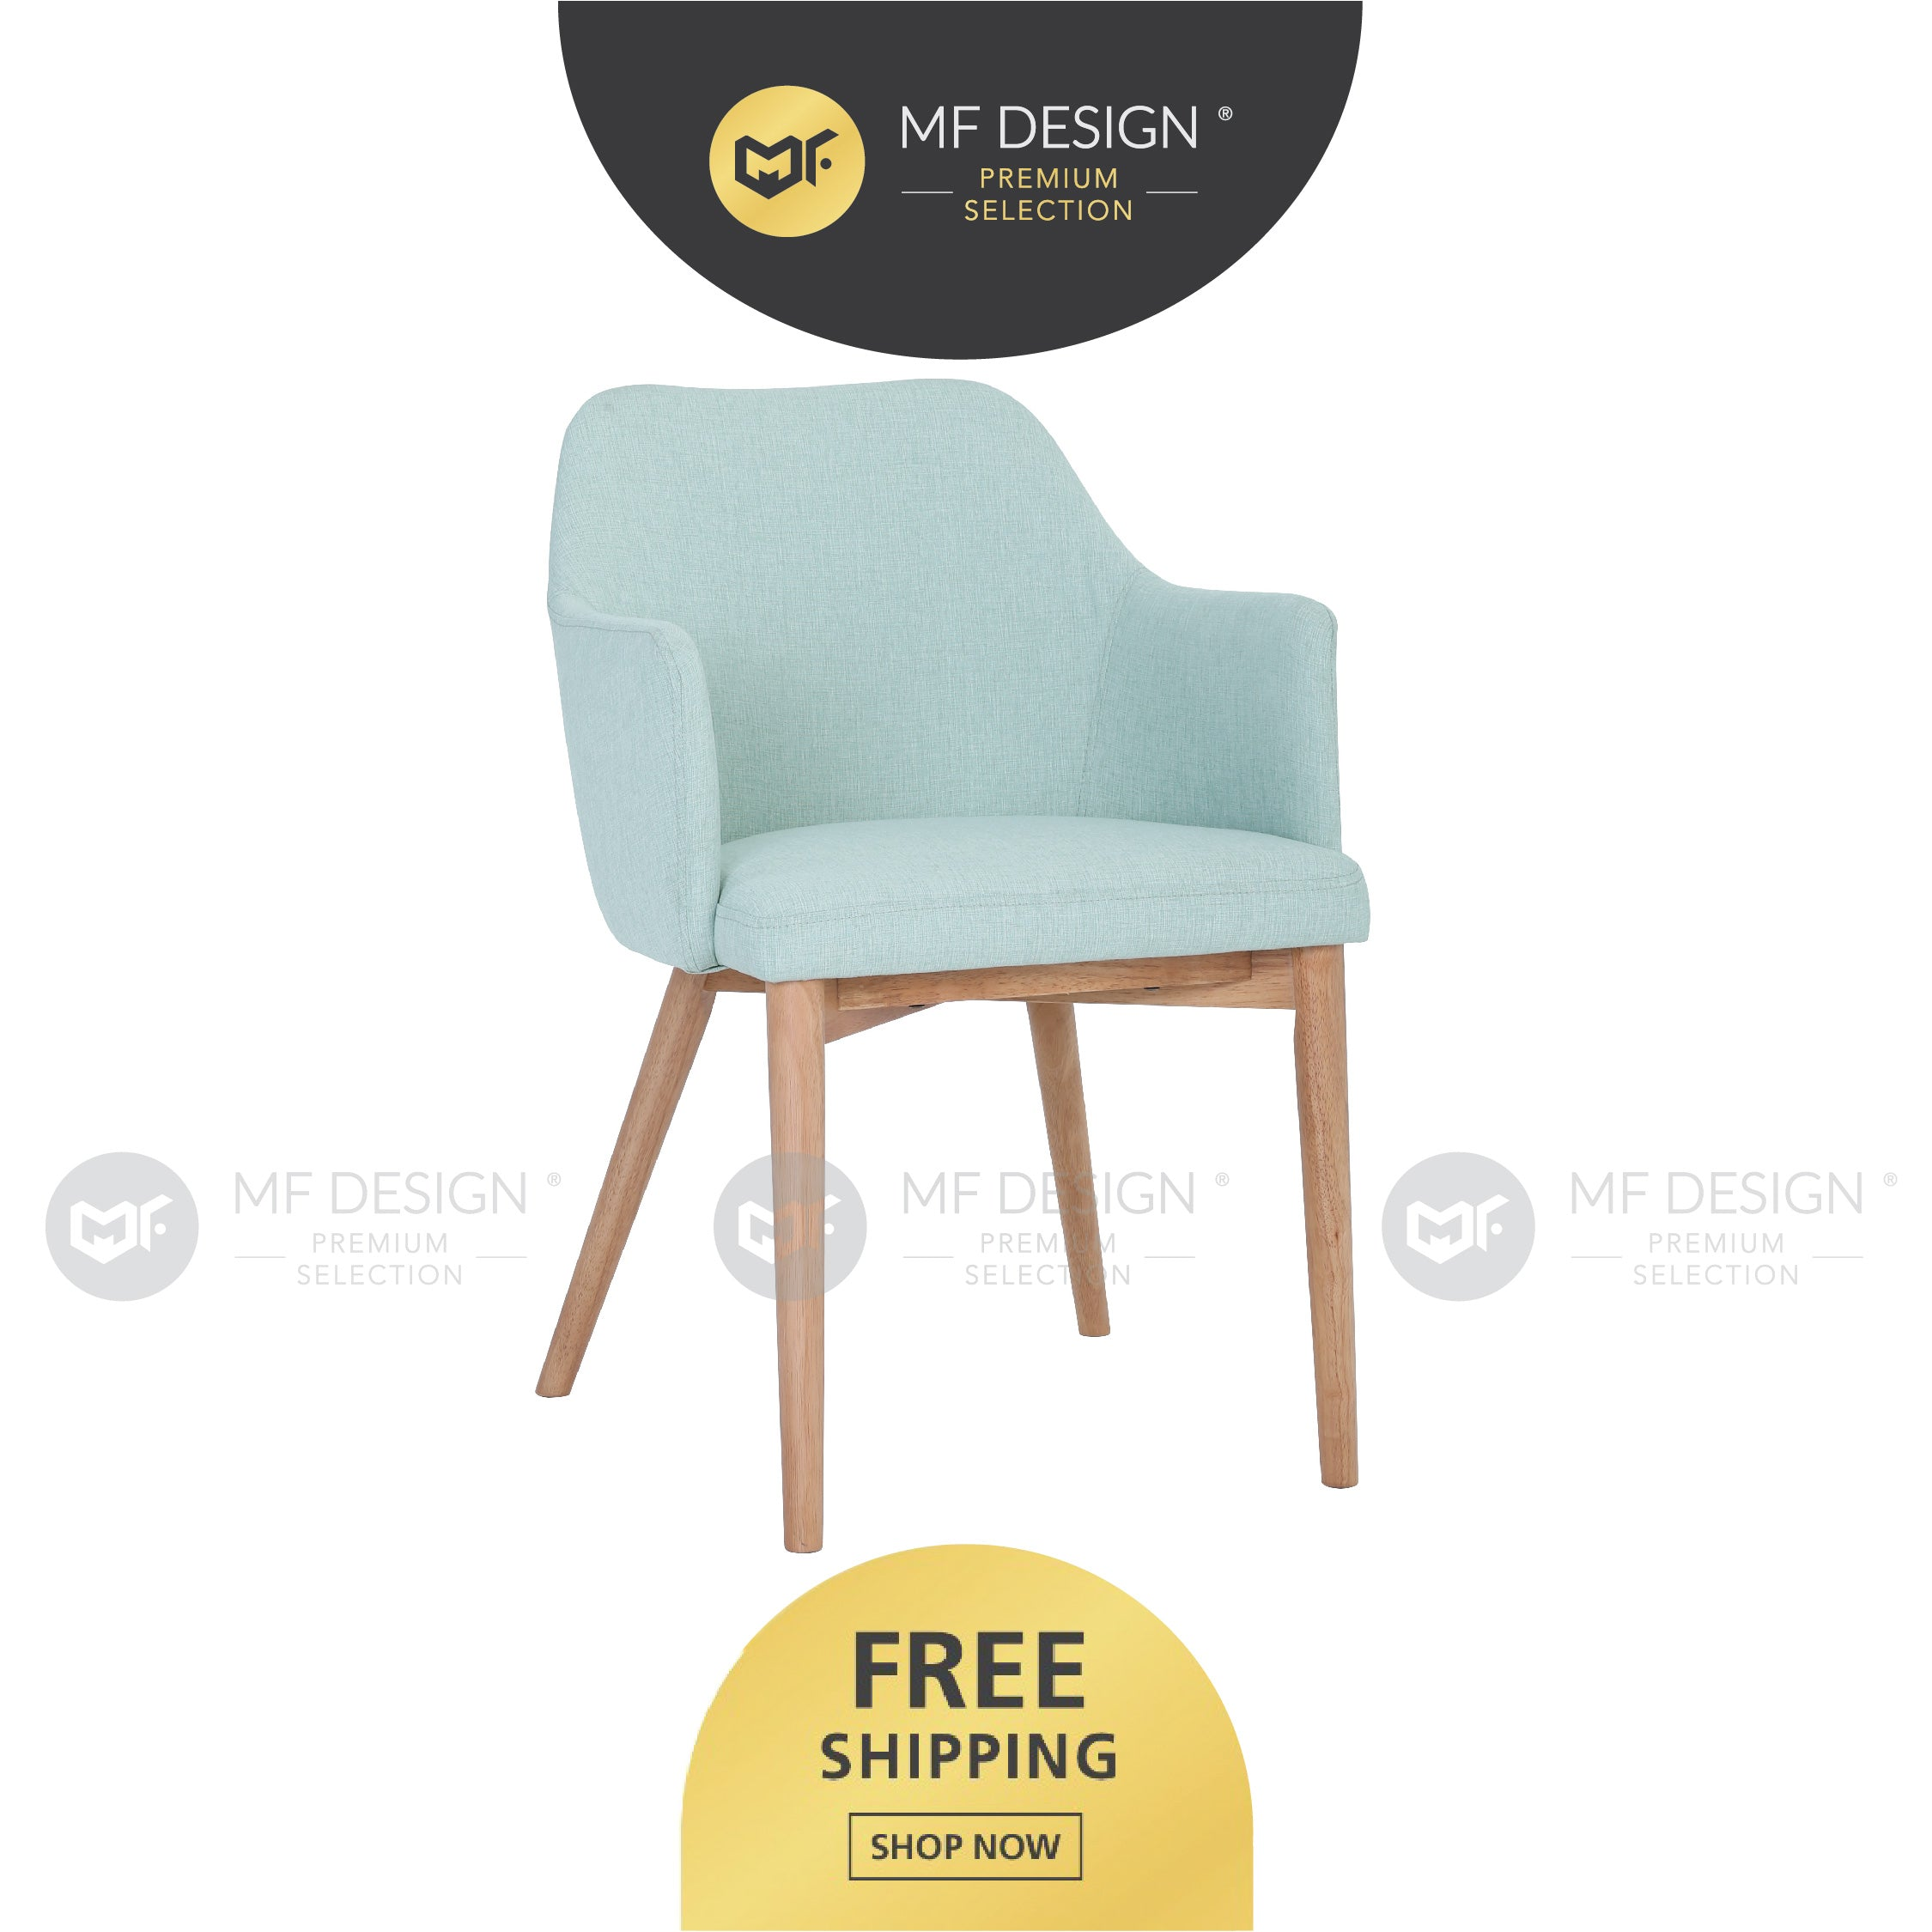 MFD Premium Grace Dining Chair / Wooden Chair / Solid Rubber Wood / Kerusi Makan Kayu Getah / Living Room / Scandinavian